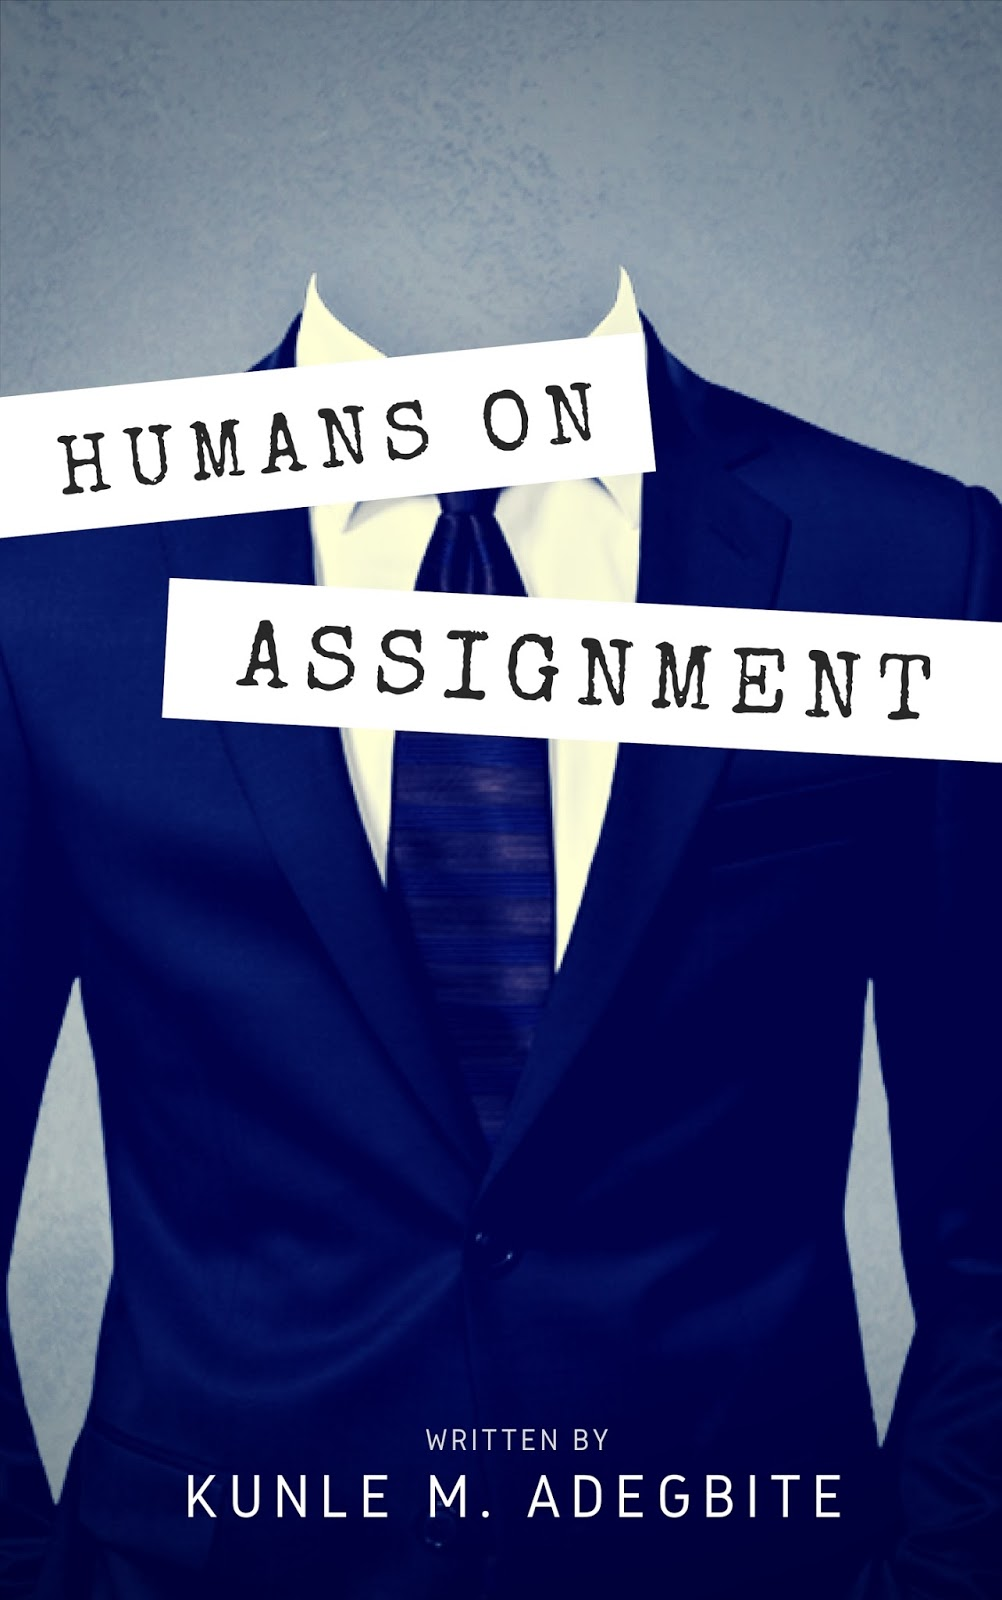 Humans On Assignment by Kunle M. Adegbite